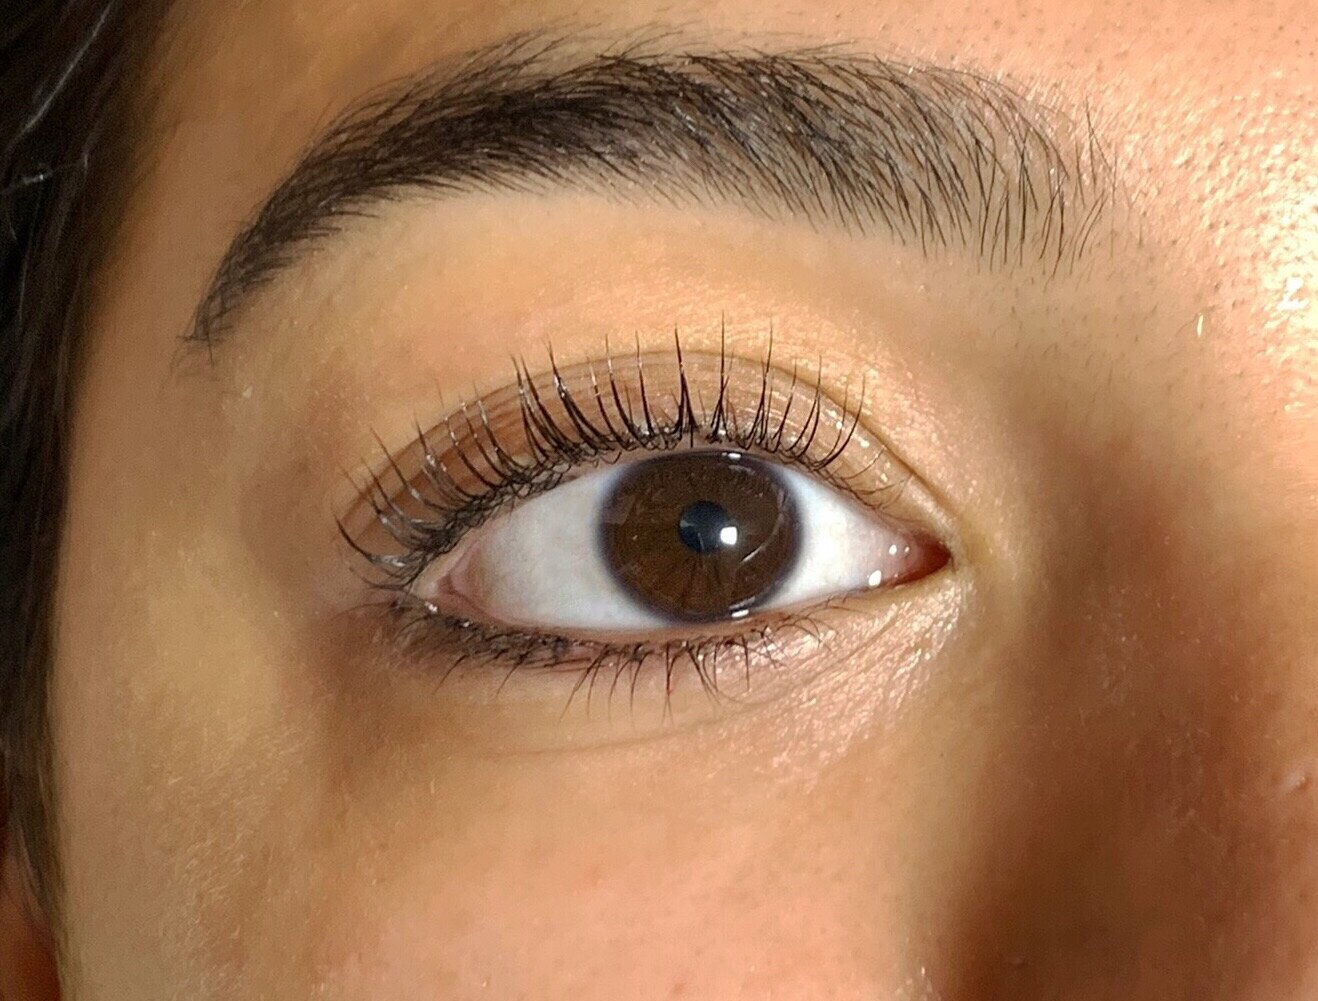 A lash lift is like a perm (but without chemicals like parabens or formaldehyde), for your natural eyelashes. It uplifts and curls them from the base of the lash, making them stand out and look longer. You can expect longer, darker looking lashes with a beautiful curl that lasts 6-8 weeks.  A lash tint procedure in which eyelashes are dyed from root to tip, giving them a darker, fuller, more dramatic appearance.